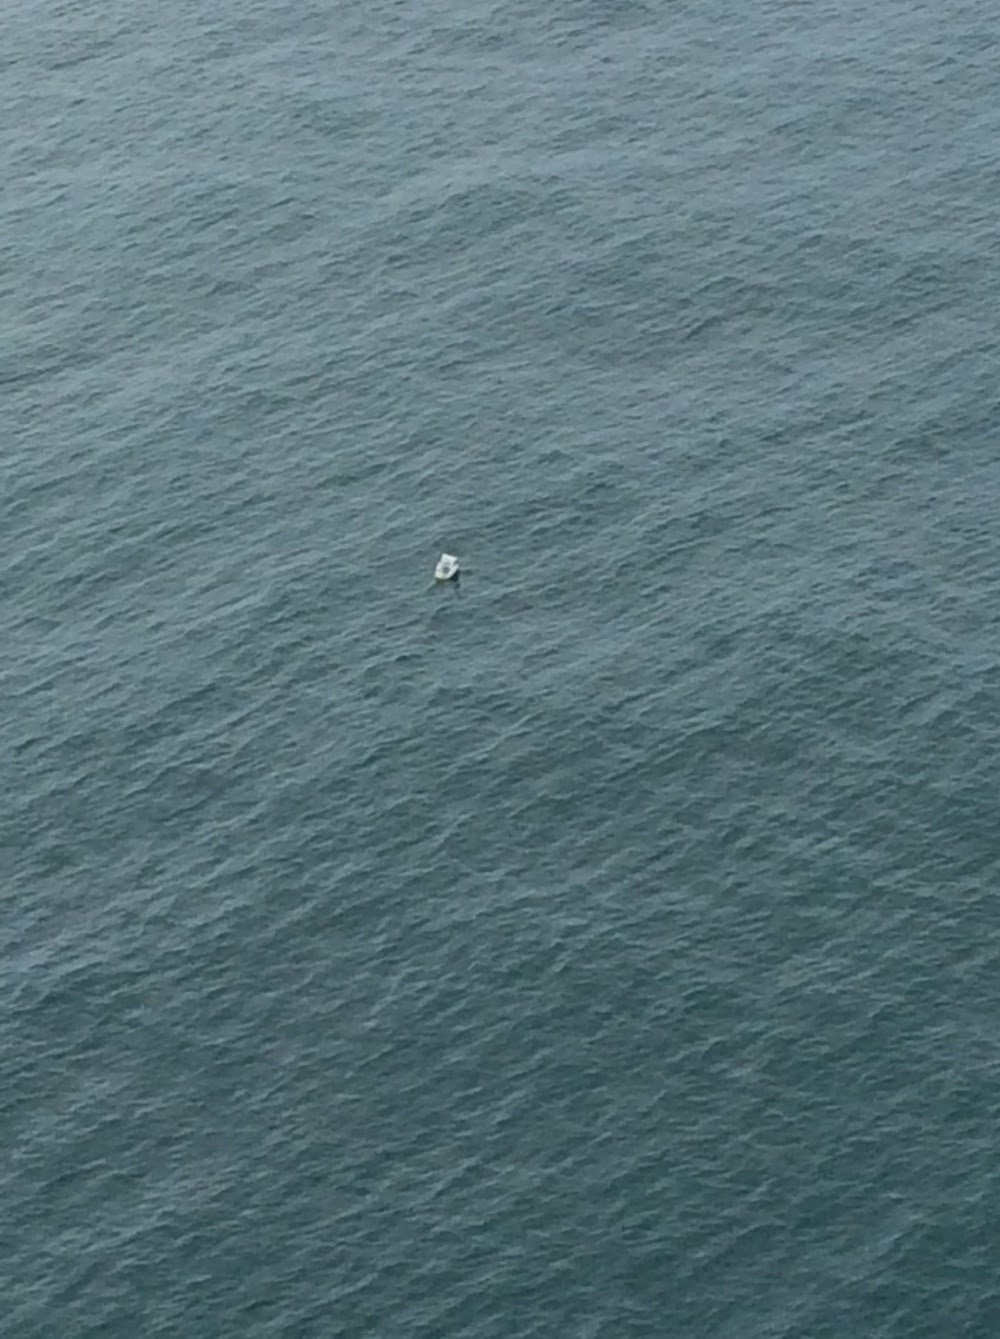 Debris from the 45-foot pleasure yacht Sea Crest is spotted on the water the morning after the vessel collided with an unknown object and sank 9 miles off Leadbetter Point State Park. (Photo: US Coast Guard)